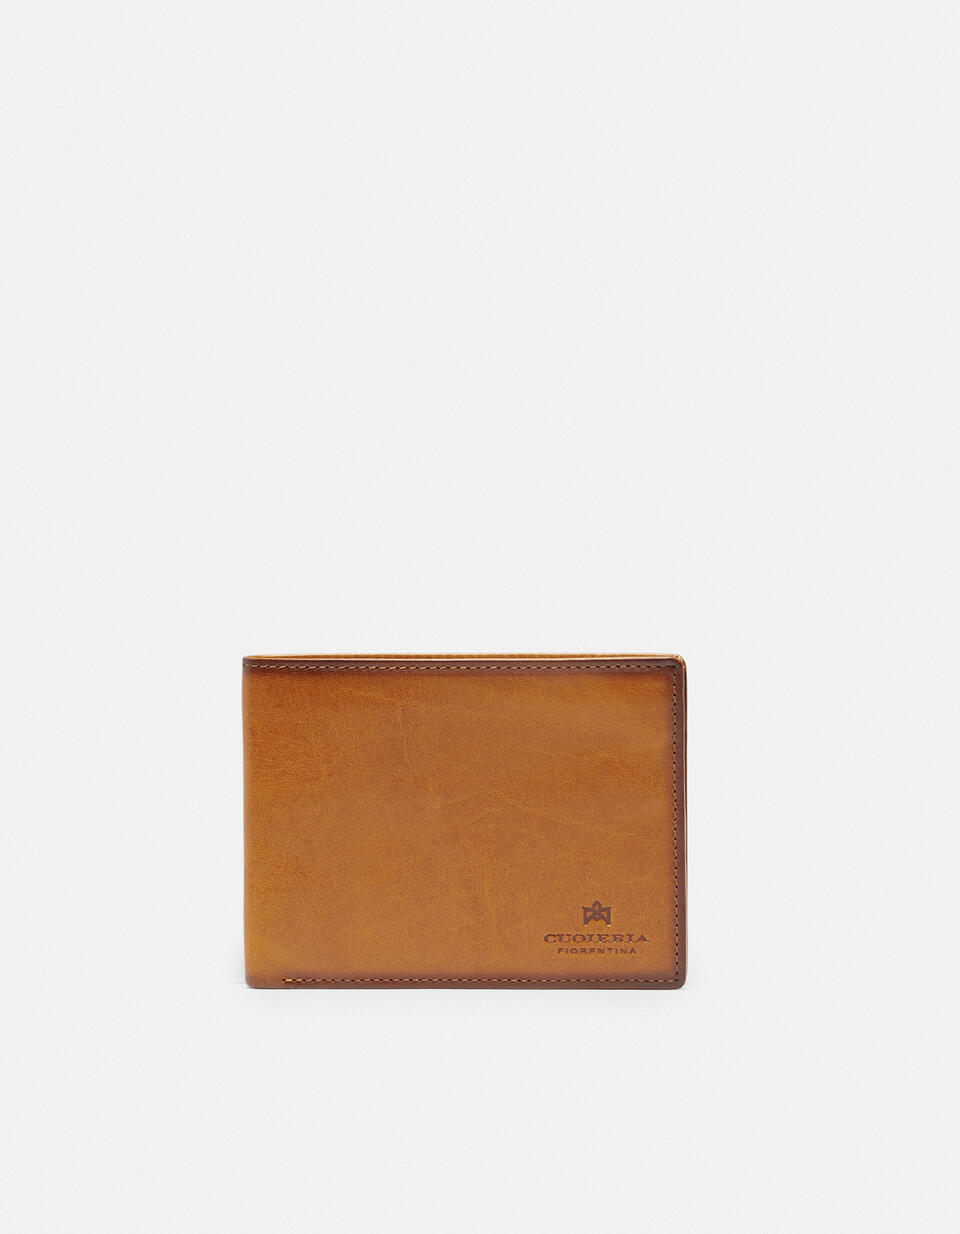 Leather Warm and Color Anti-RFid Wallet  Cuoieria Fiorentina